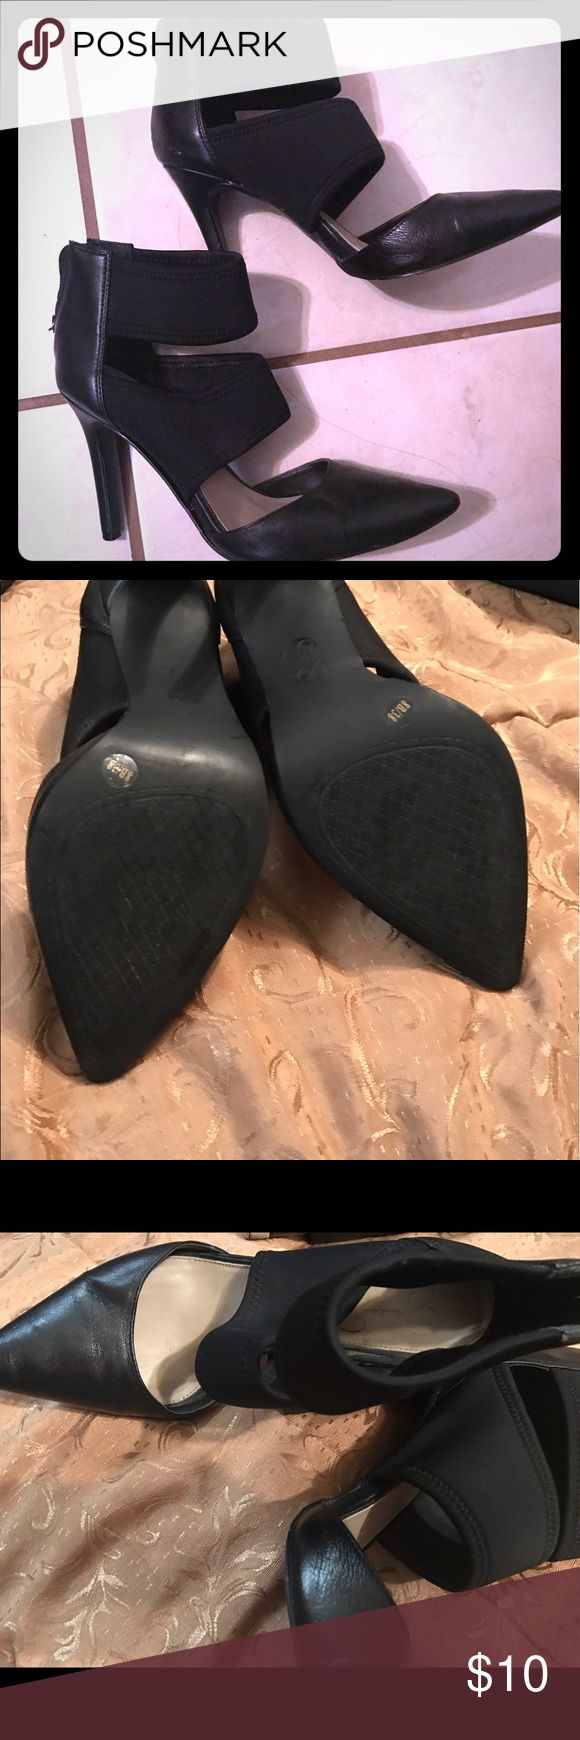 💋⚡️JESSICA SIMPSON HEELS🔥❤ These jessica simpson heels have been worn several times, super comfortable and still have lots of life to them remaining i wore them with dresses,jeans you name it:) Jessica Simpson Shoes Heels